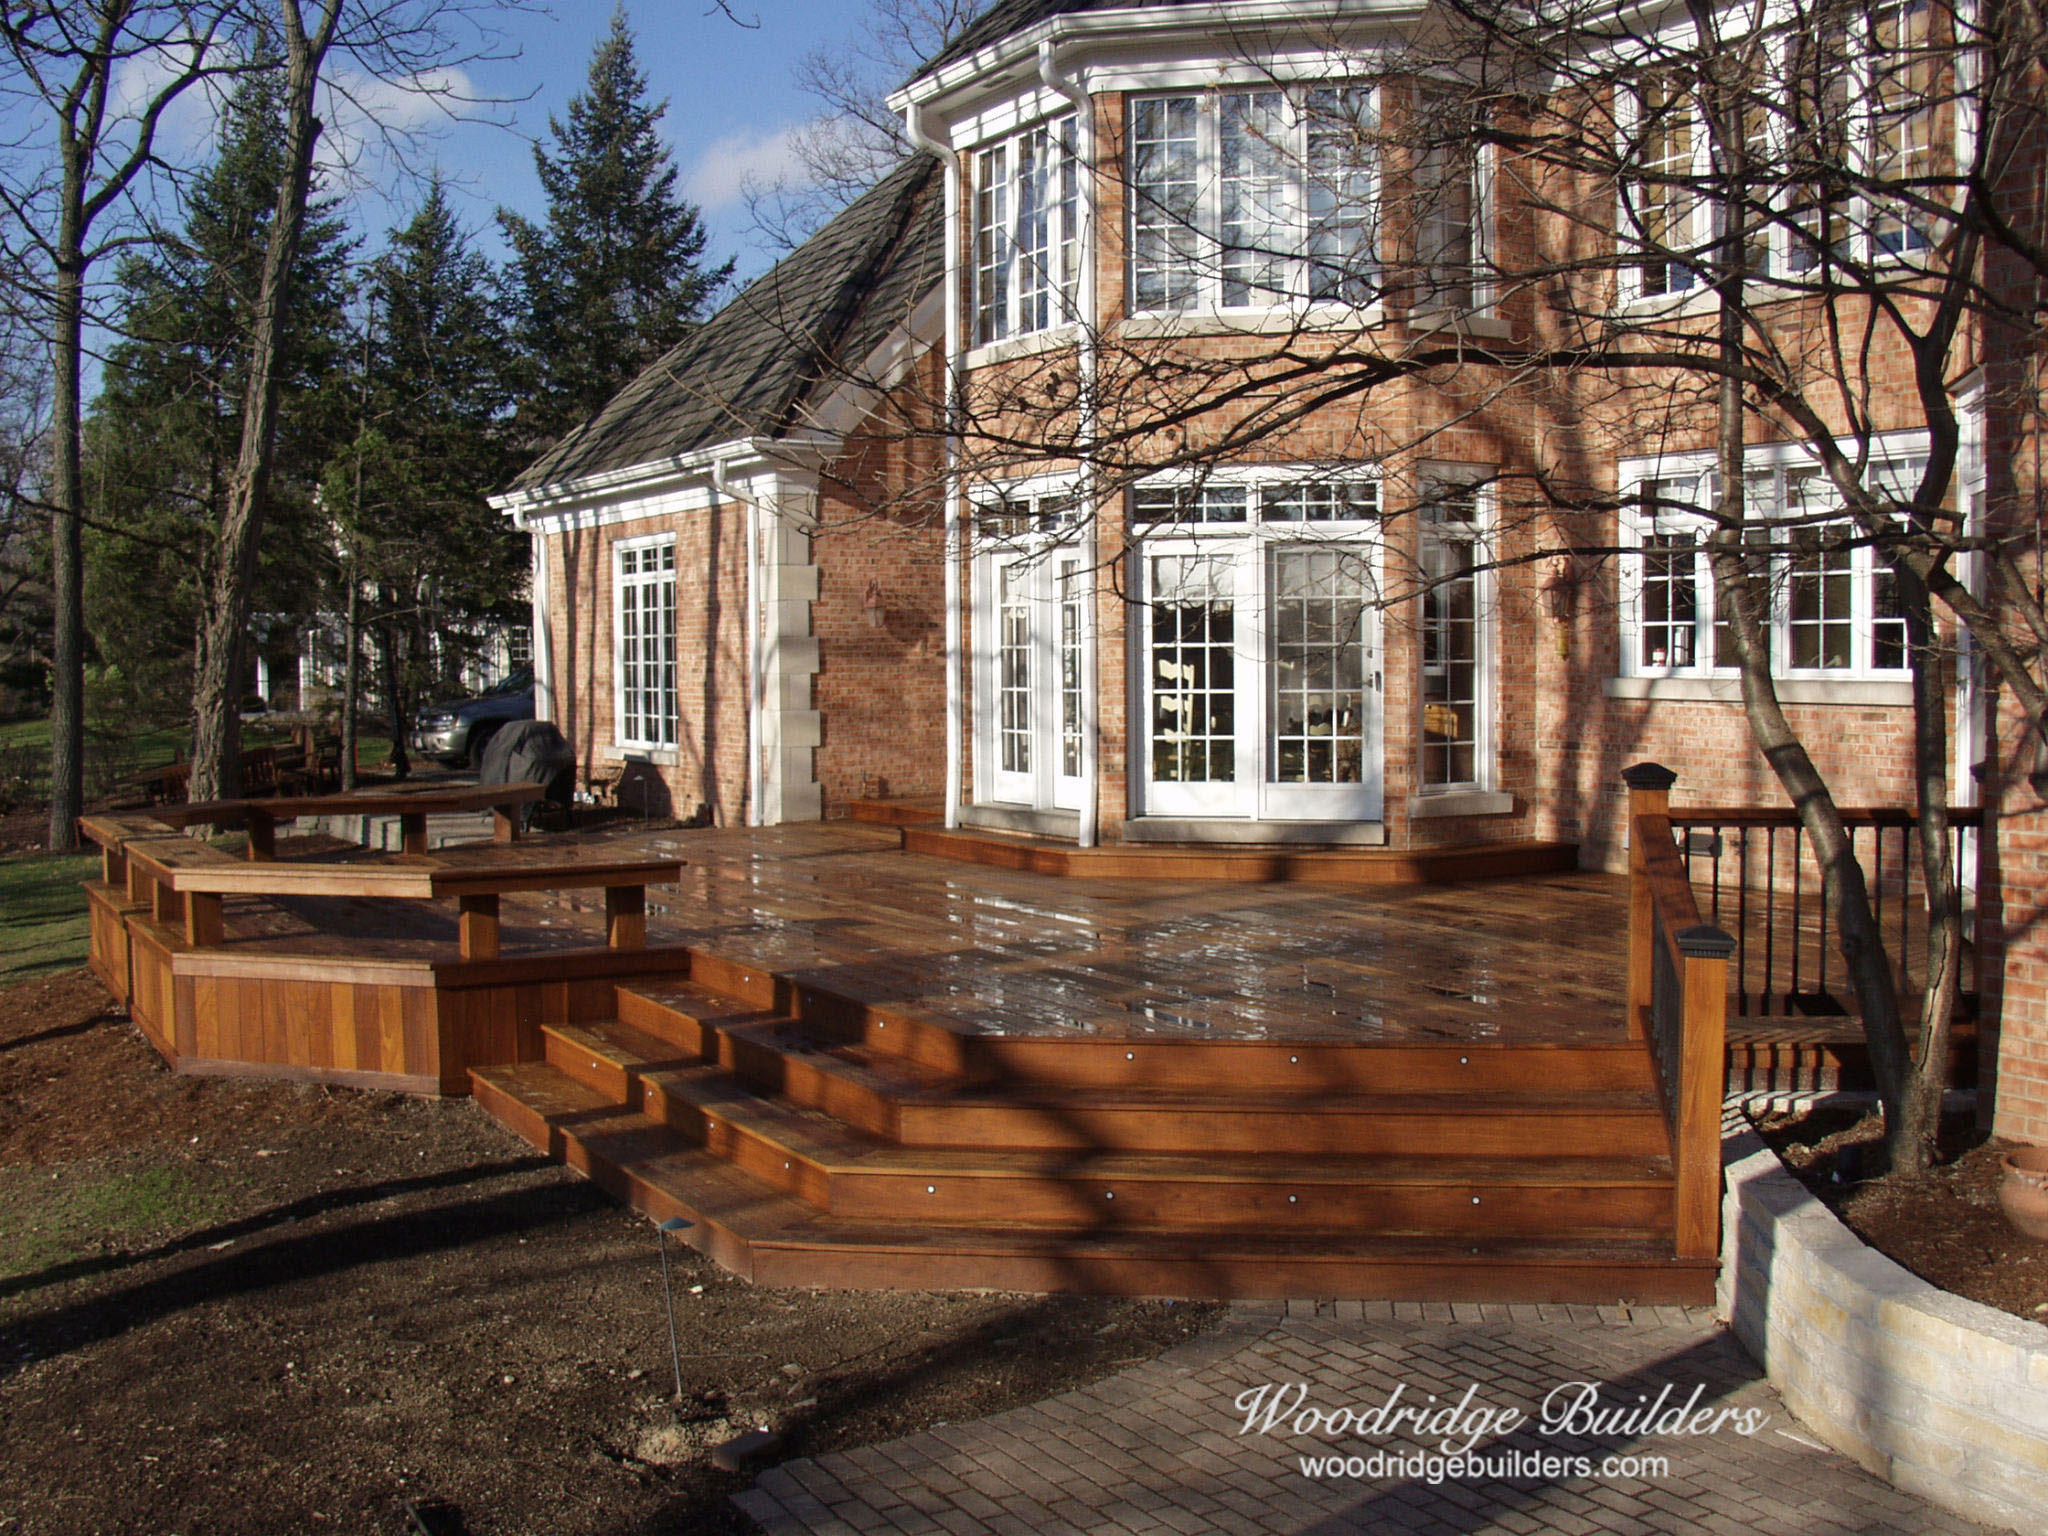 I-02 Ipe Deck and Benches with Dekor Balusters